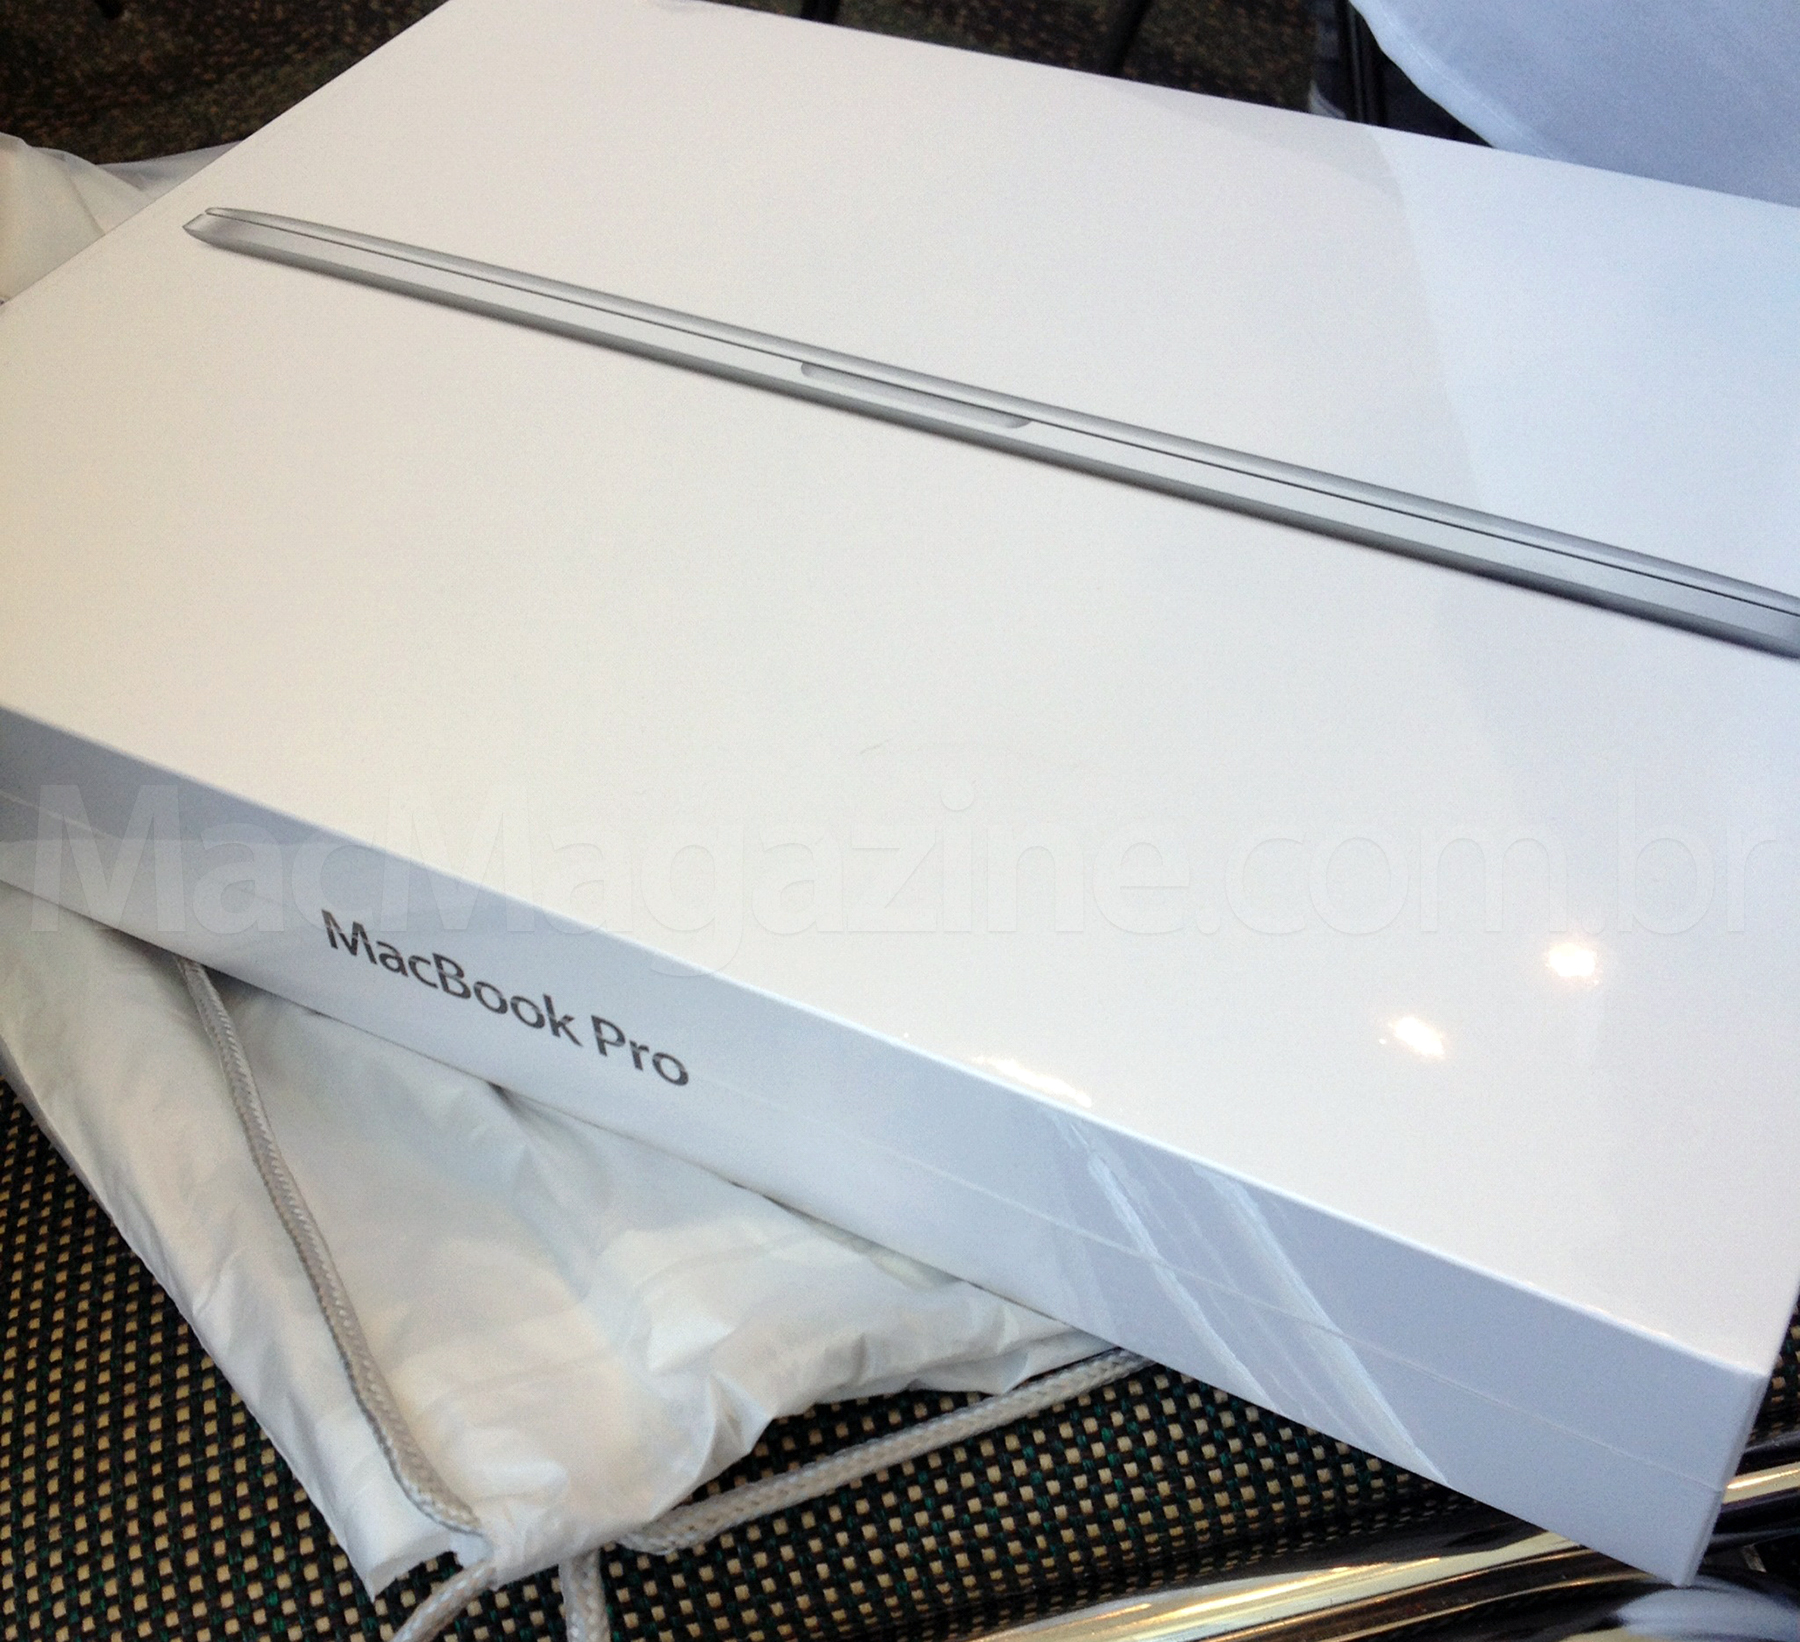 Unboxing do novo MacBook Pro